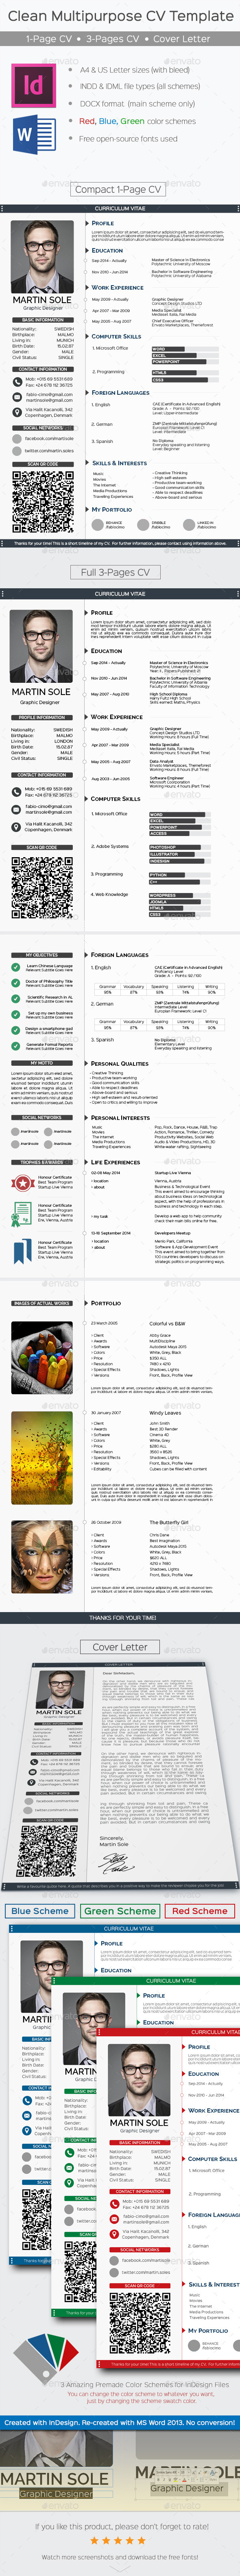 GraphicRiver Clean Multipurpose CV Template 8980498